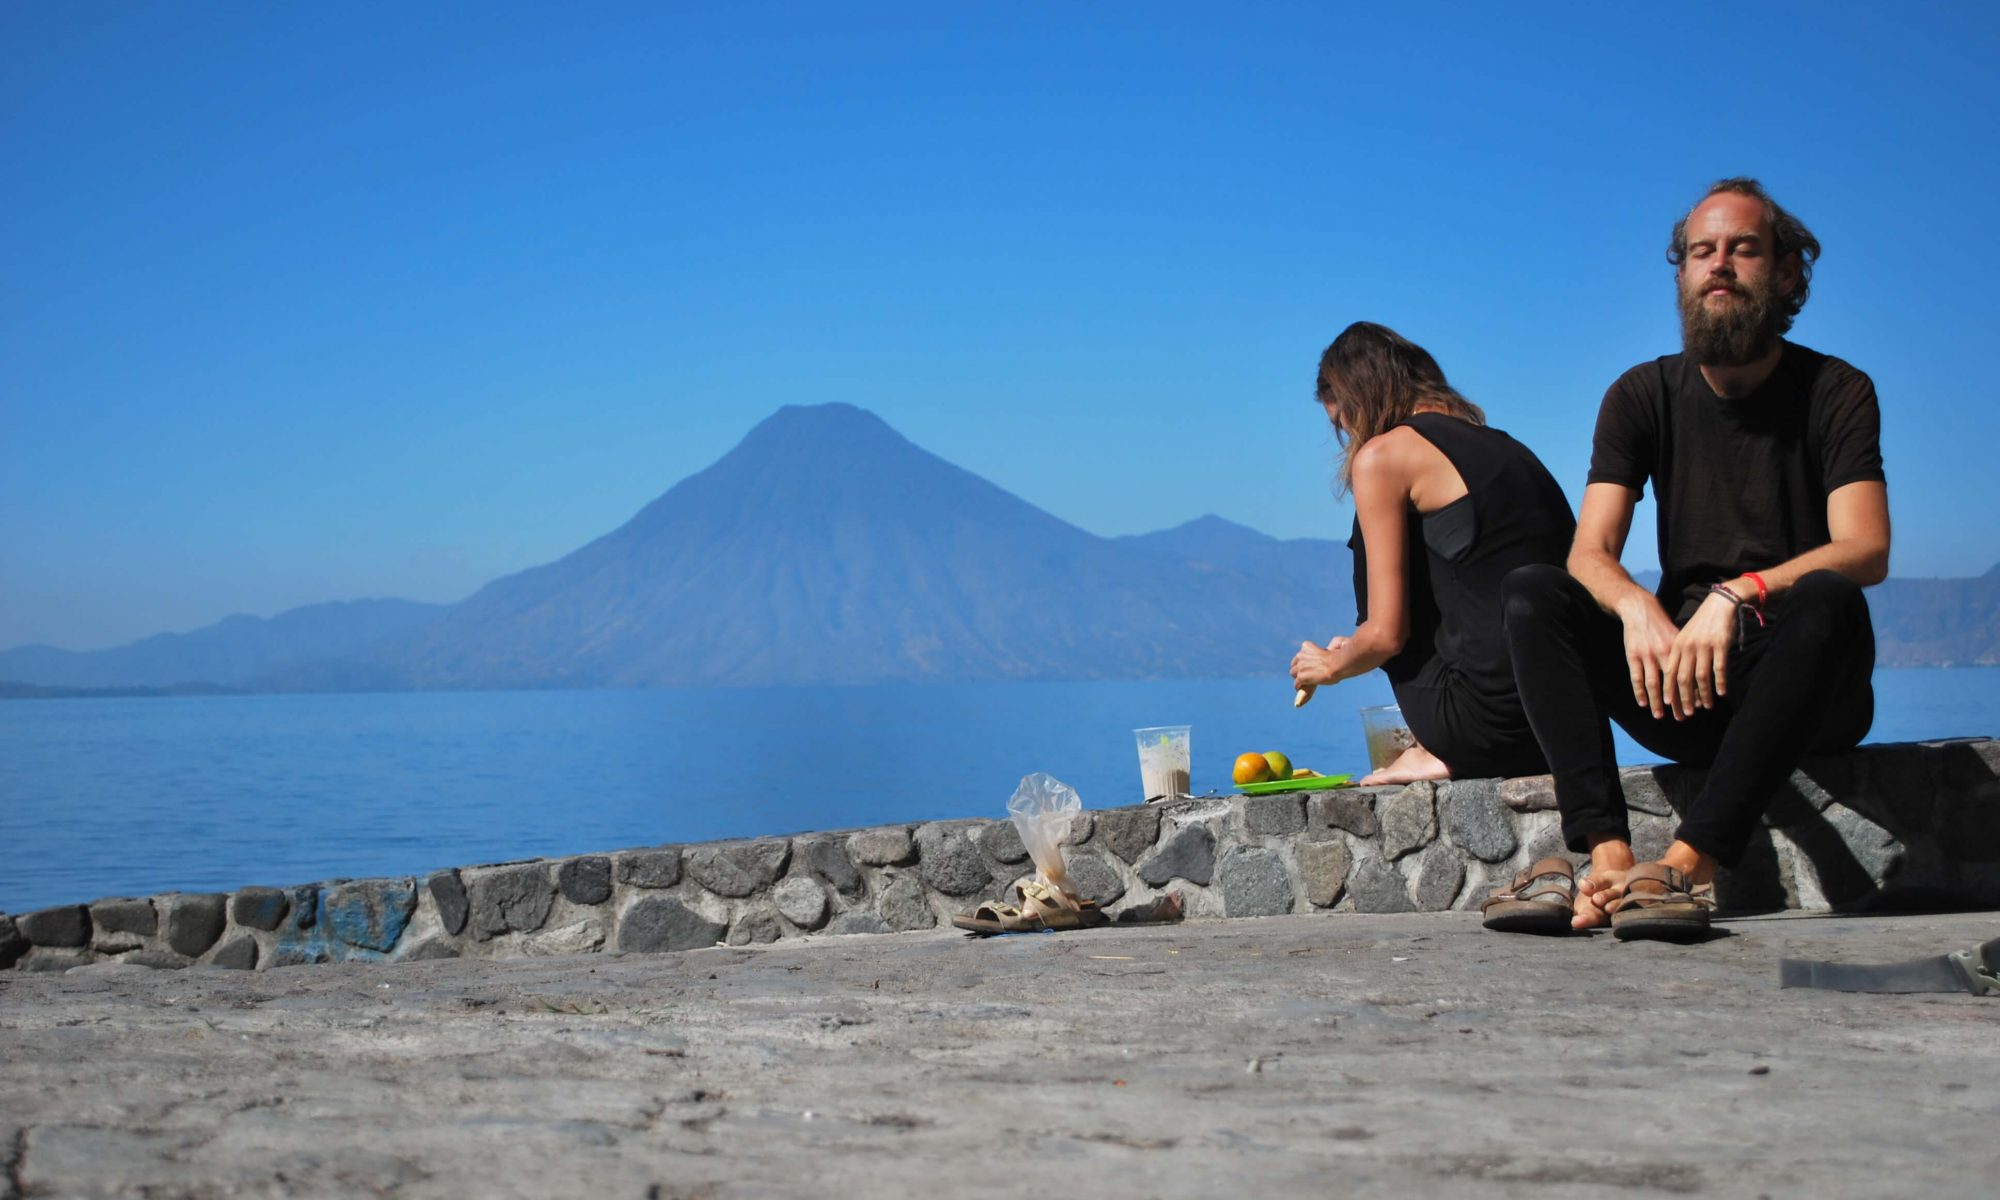 Meet theperfectstrugglers at Lake Atitlan